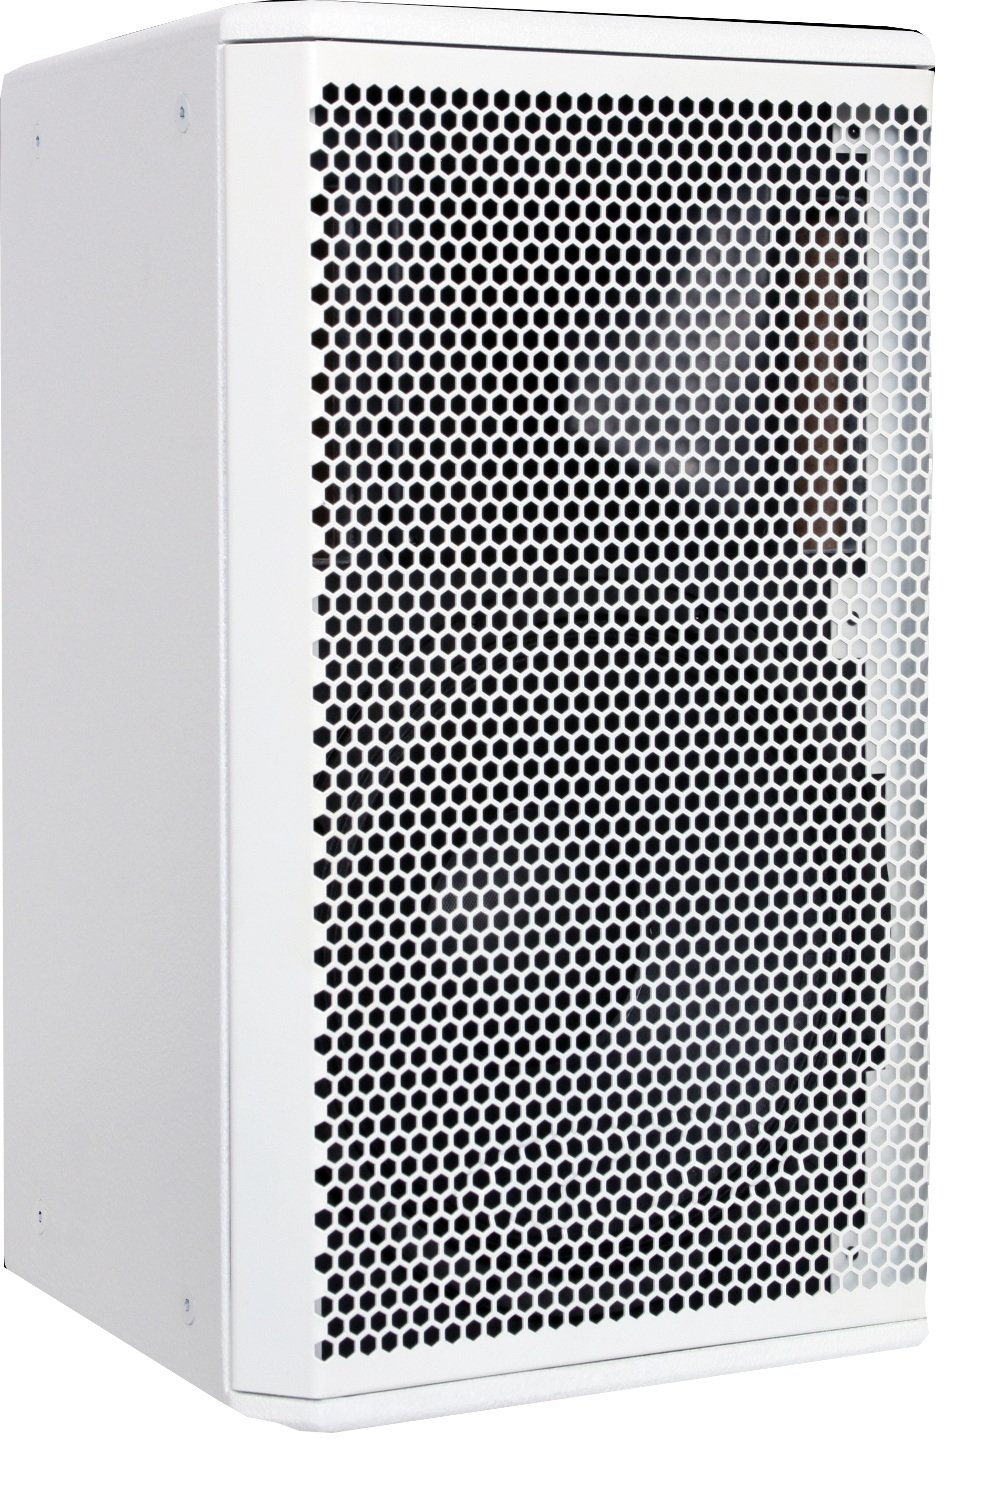 "Core 12 Two-Way 12"" Speaker in White"